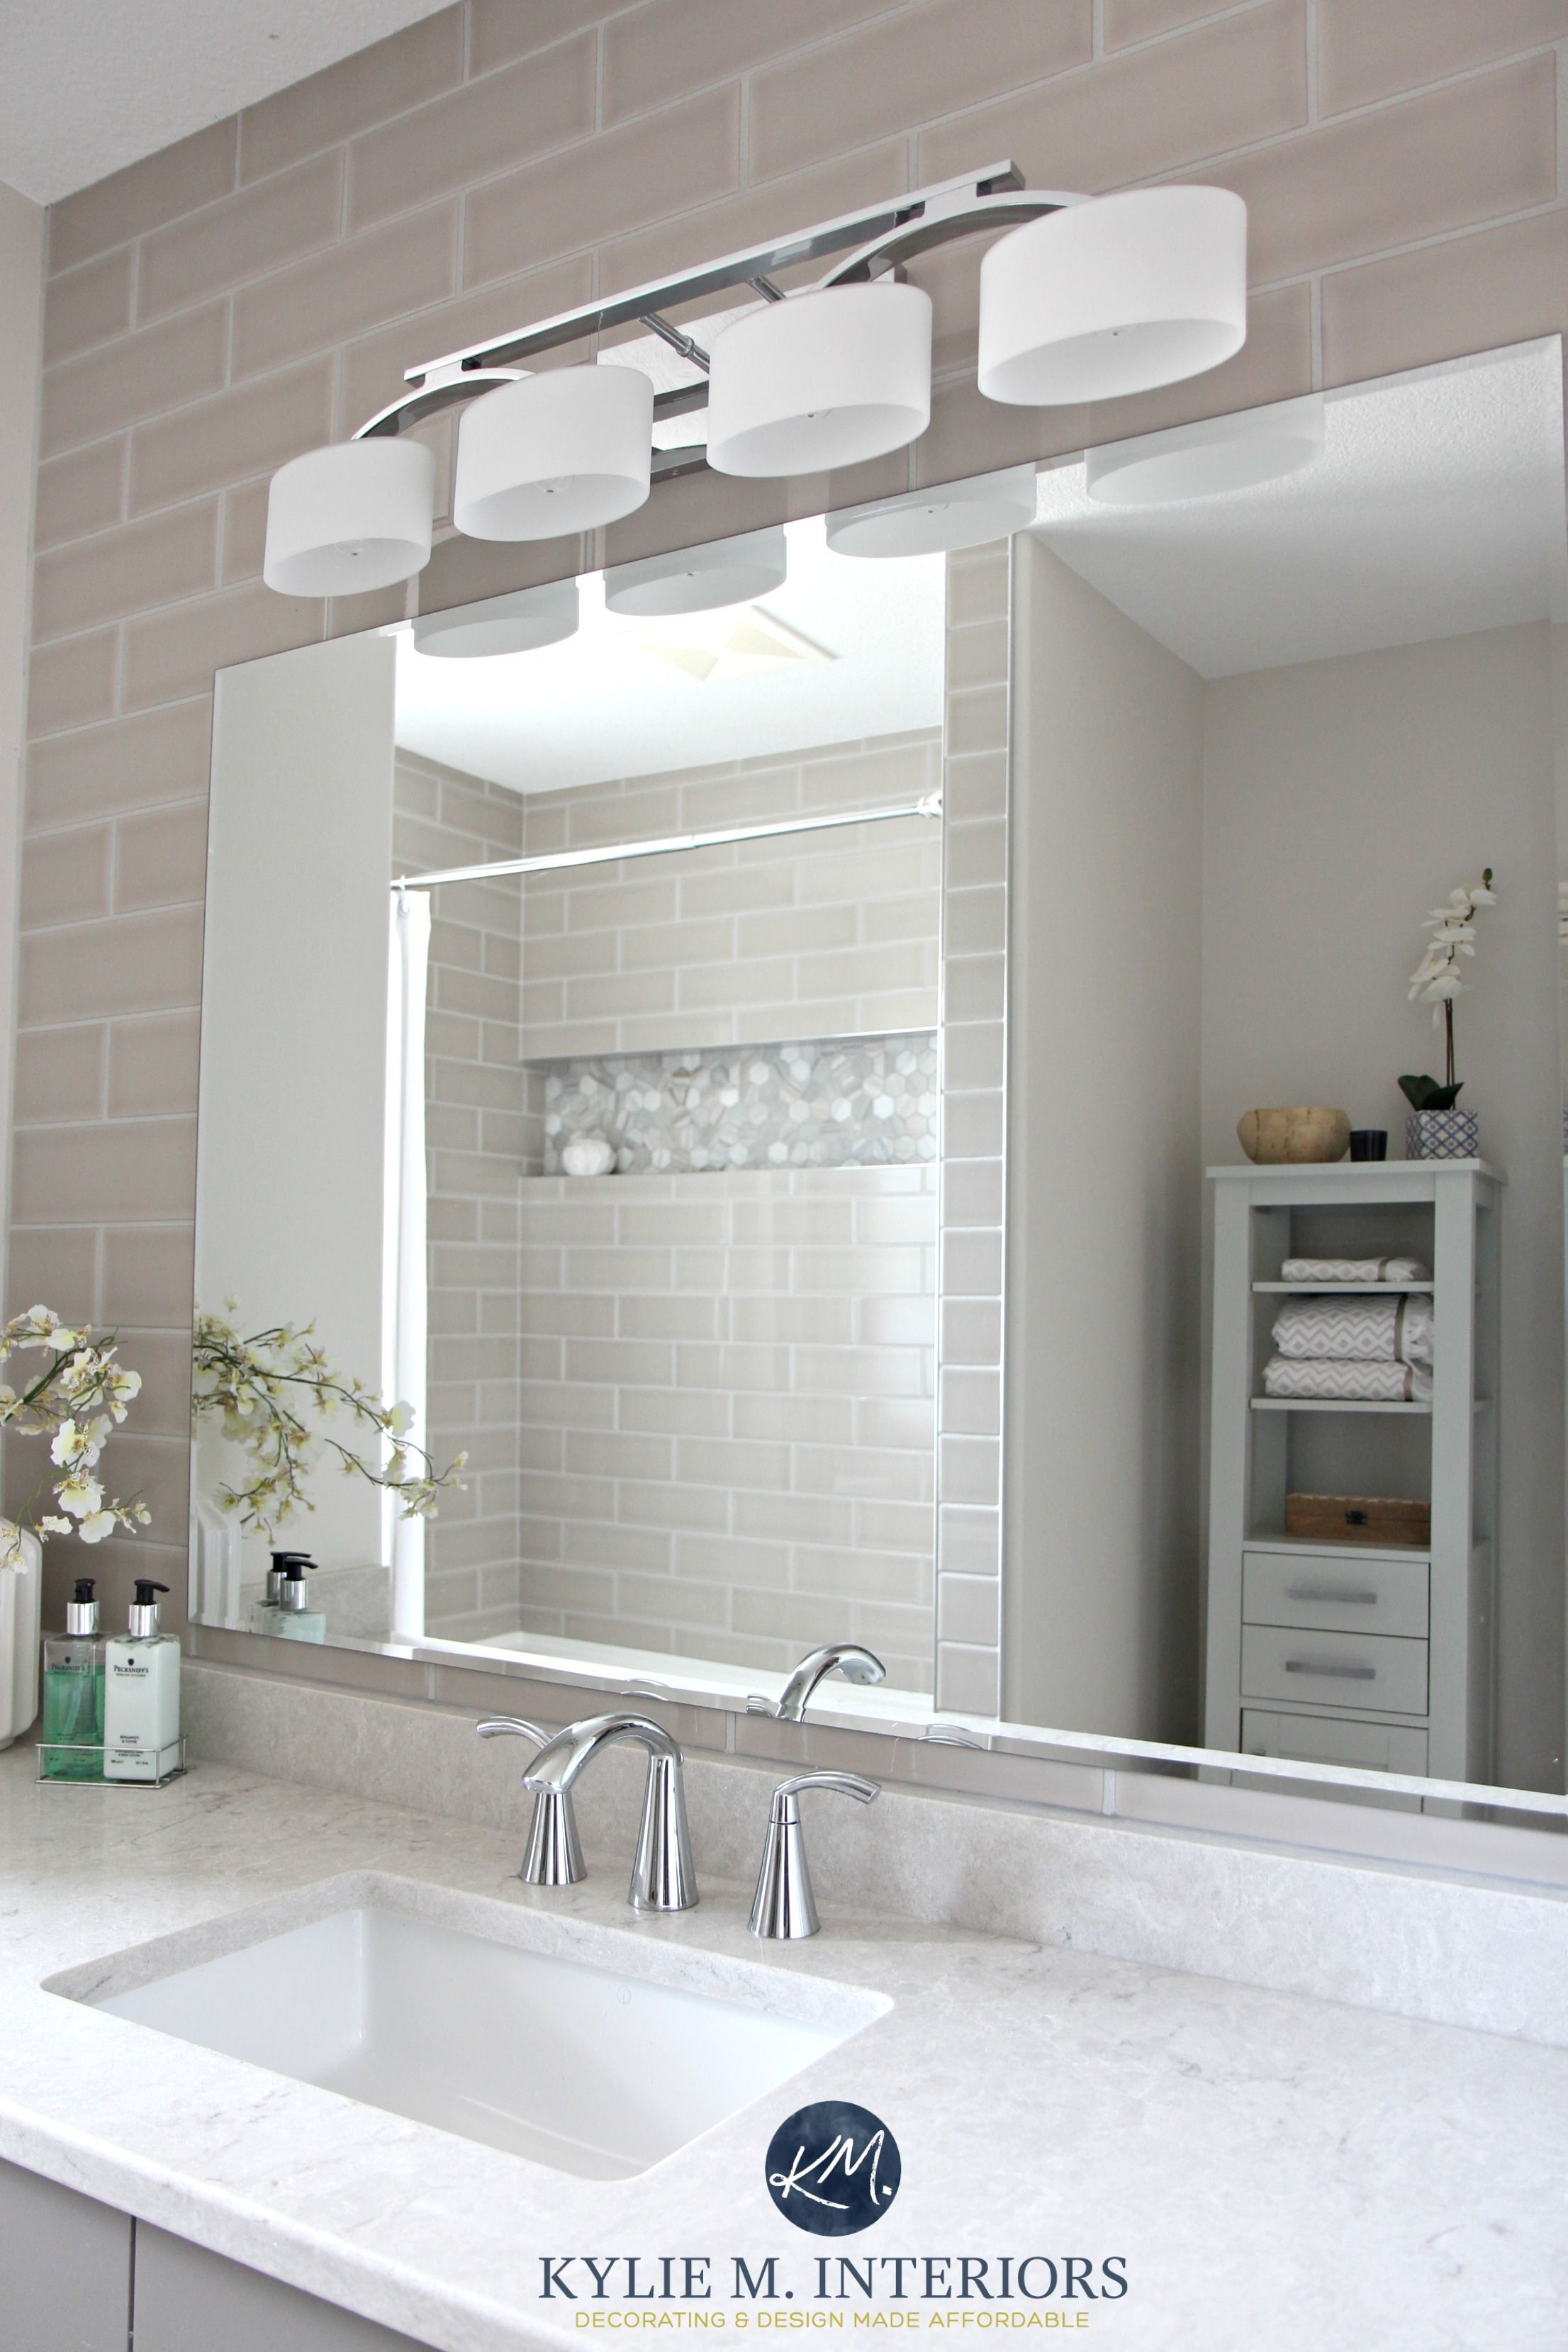 Our Bathroom Remodel – Greige, Subway Tile and More…   Awesome ...